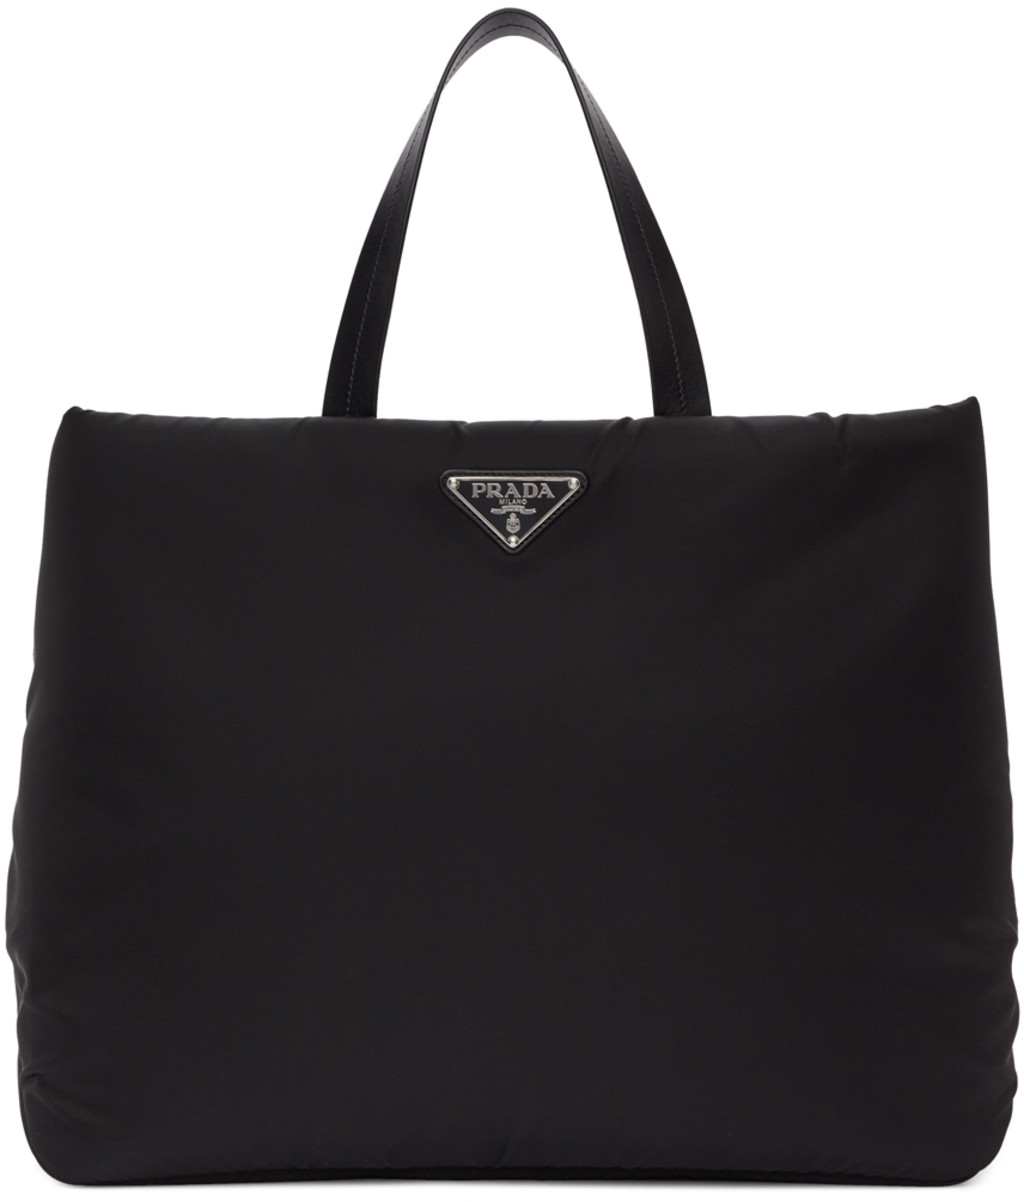 9327a475a47c ... cheap prada bags for women ssense 762ed 11845